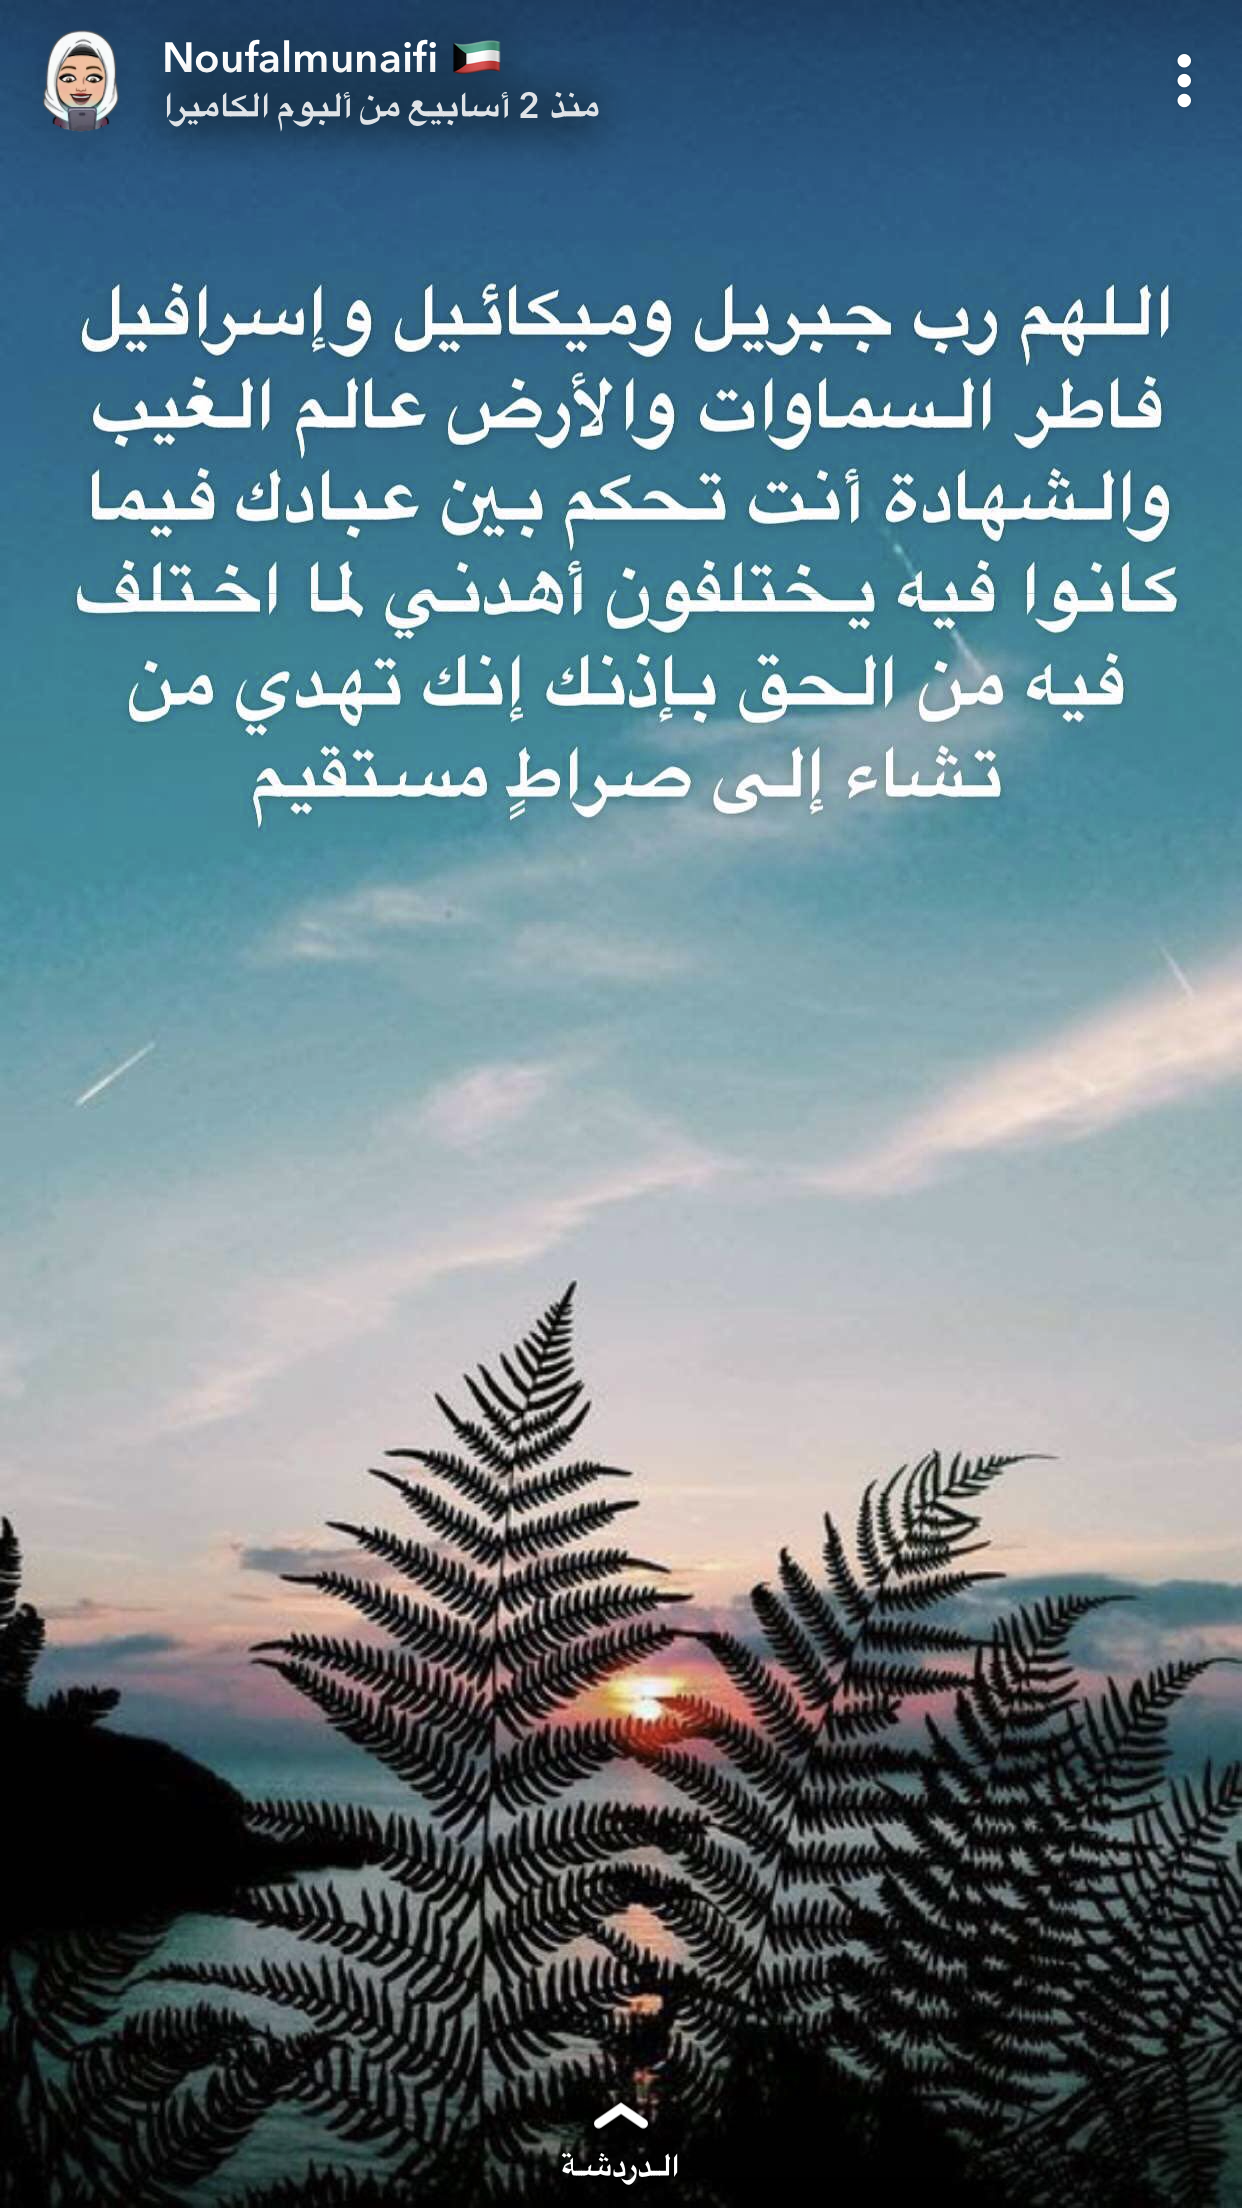 Pin By Reem On نوف المنيفي Woman Quotes Strong Women Quotes Positive Quotes